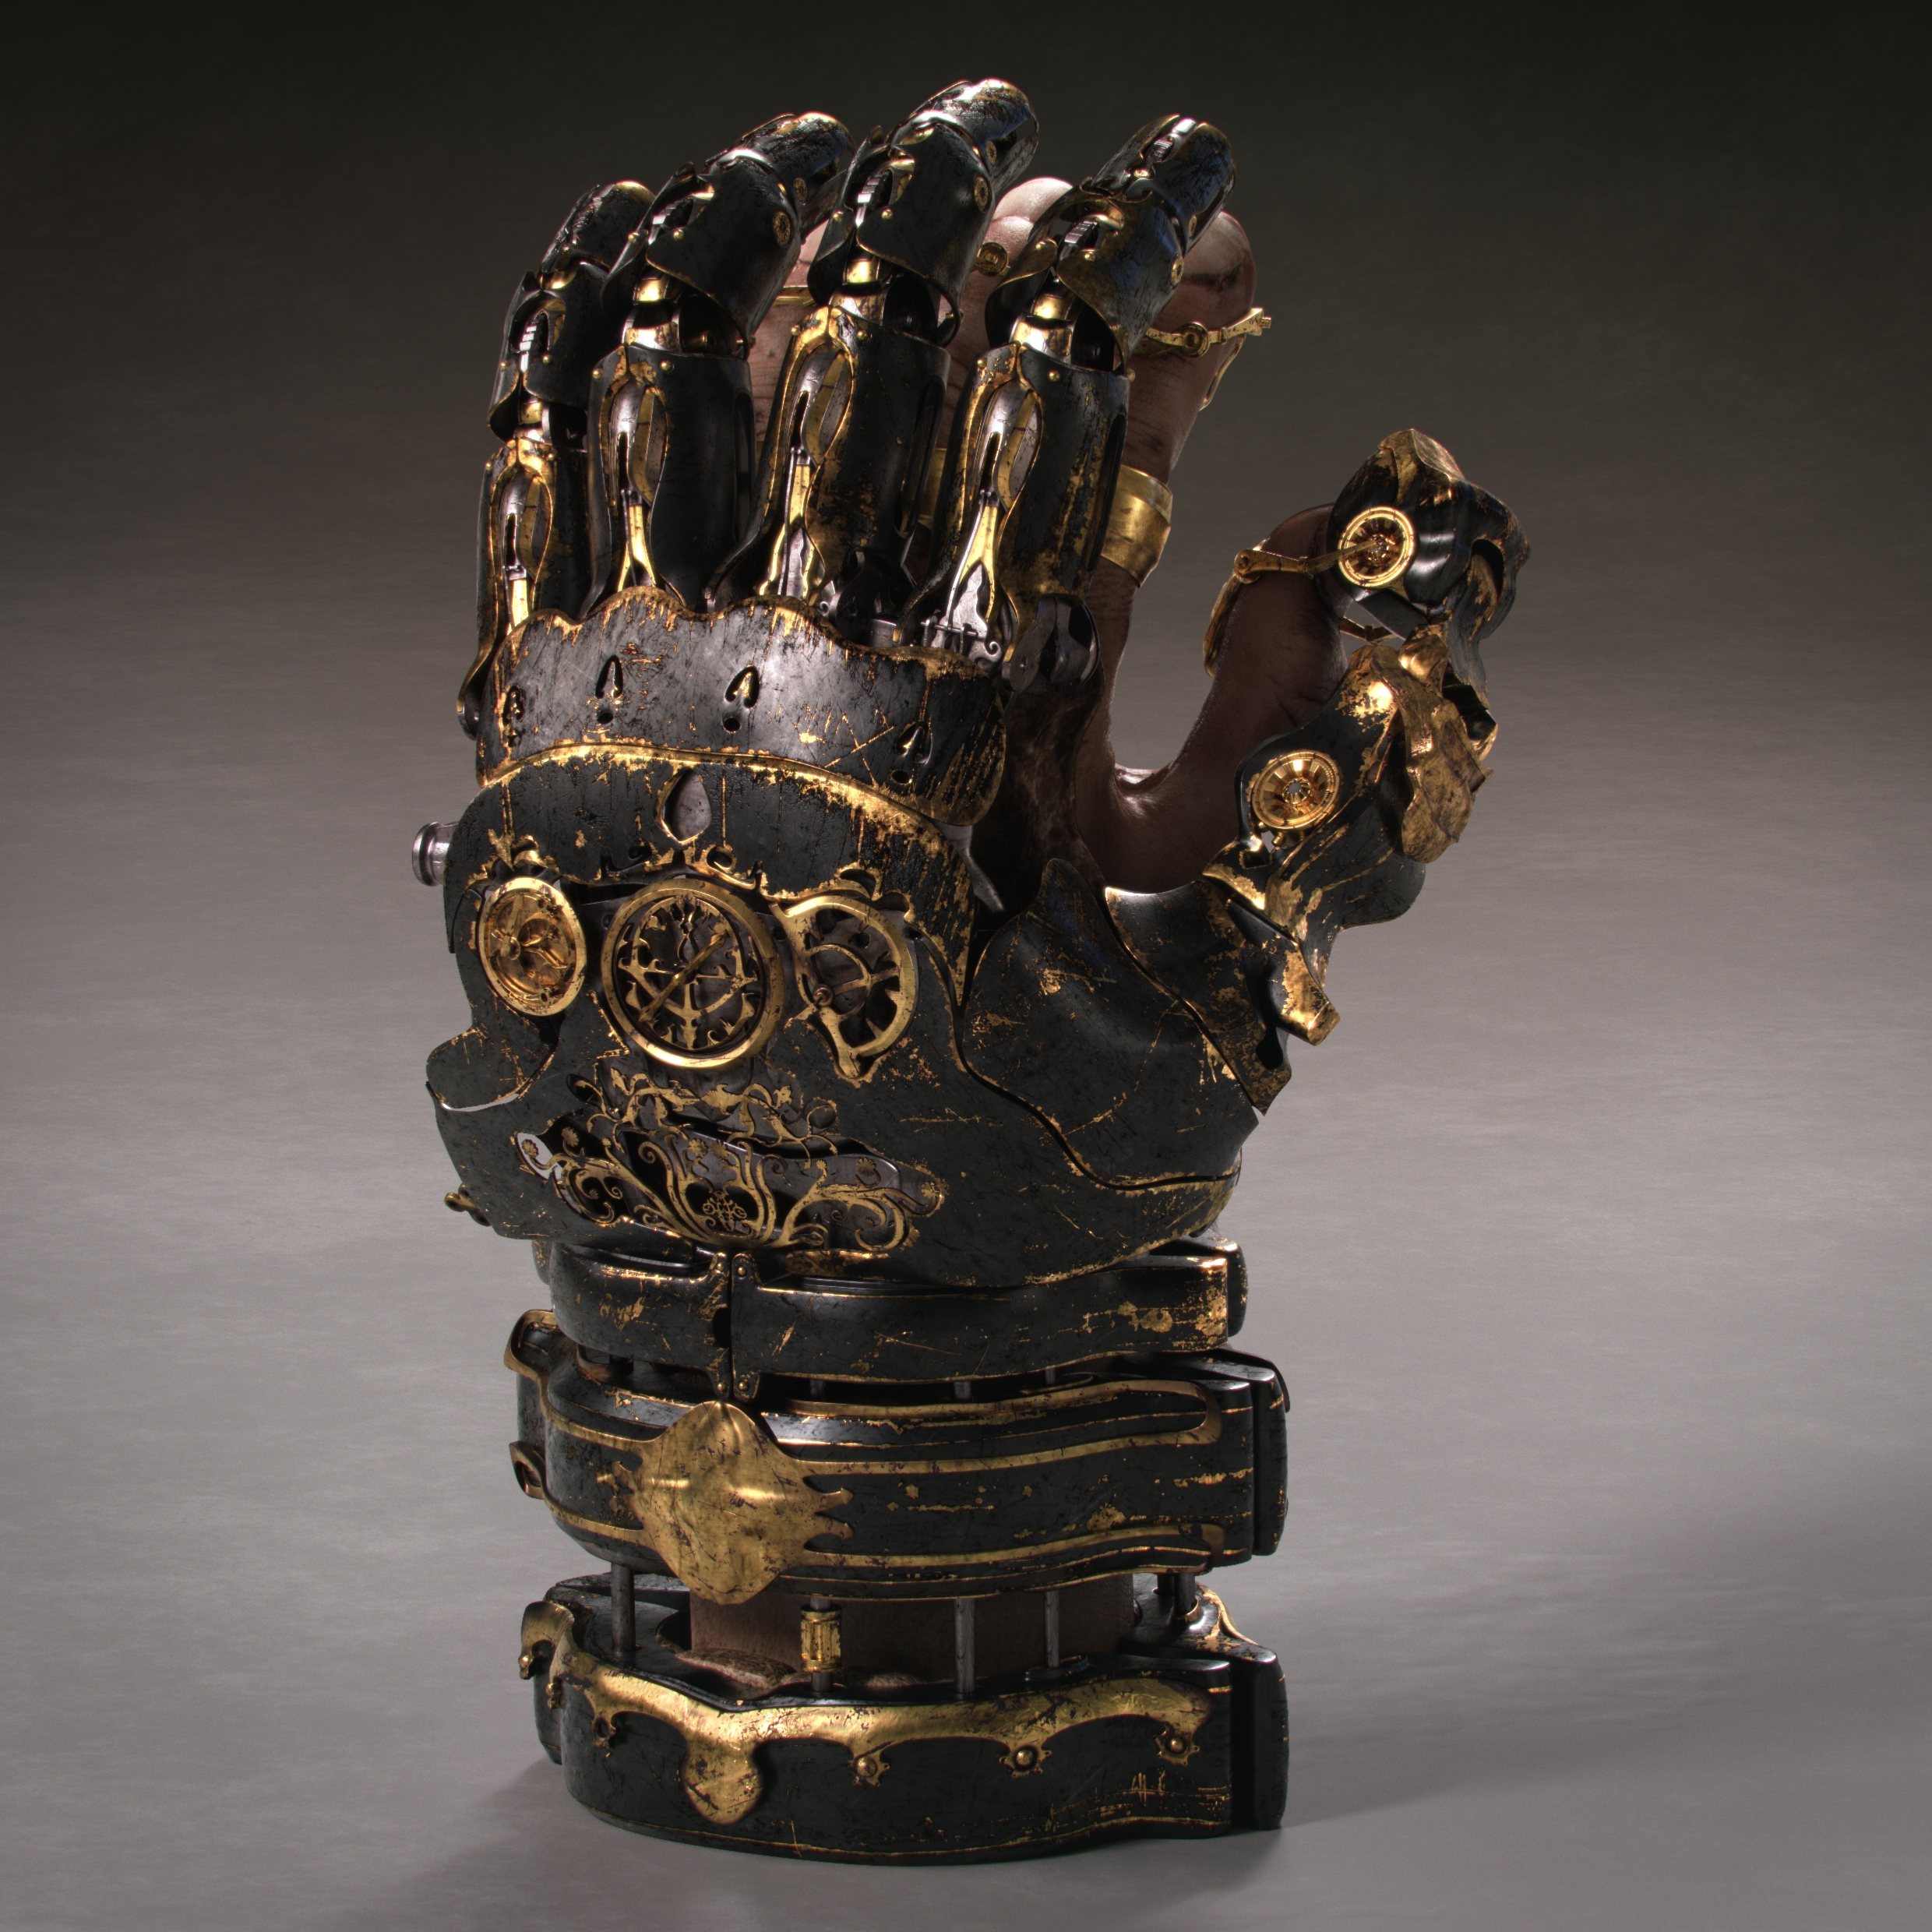 Steampunk_Royal_Gauntlet_2K_Black_Back_v01